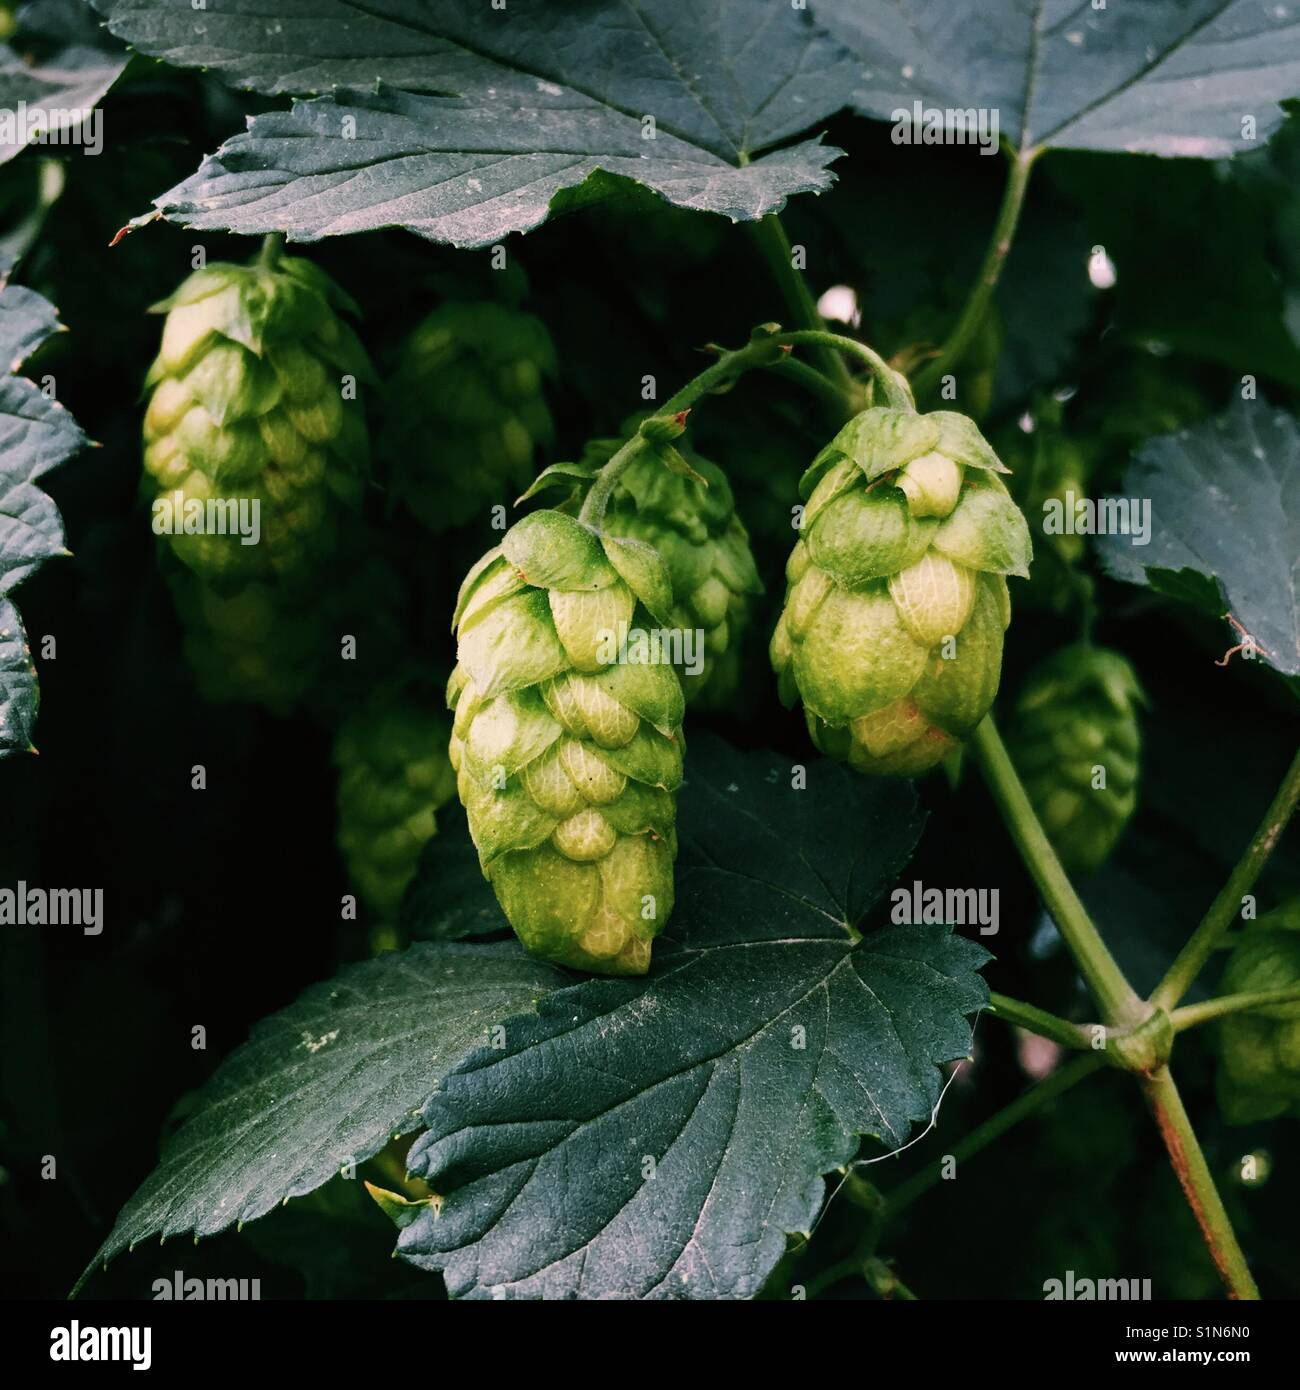 Close up detail shot of hops growing on a vine - Stock Image